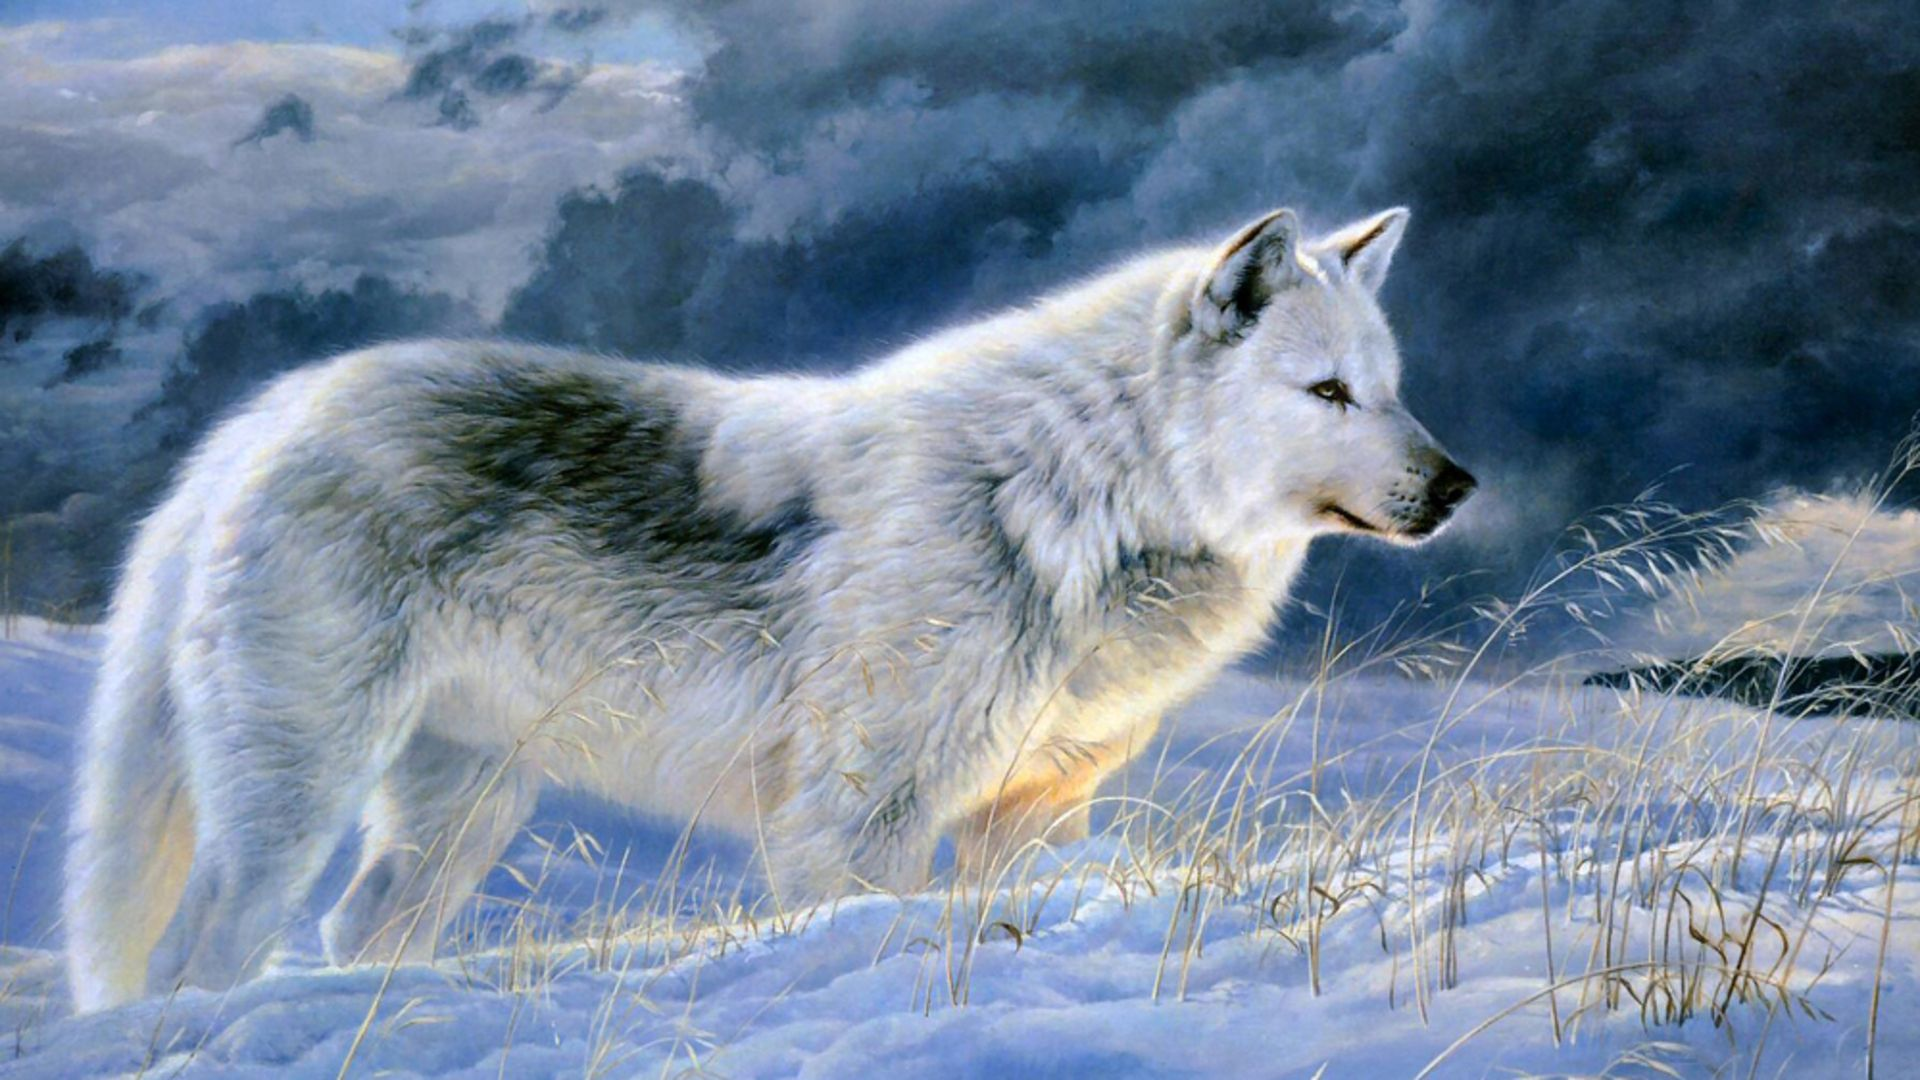 Must see Gray Wolf Wallpaper High Quality - 2b607a5ccba7fdfb185fbada2df939ab  You Should Have_20169.jpg